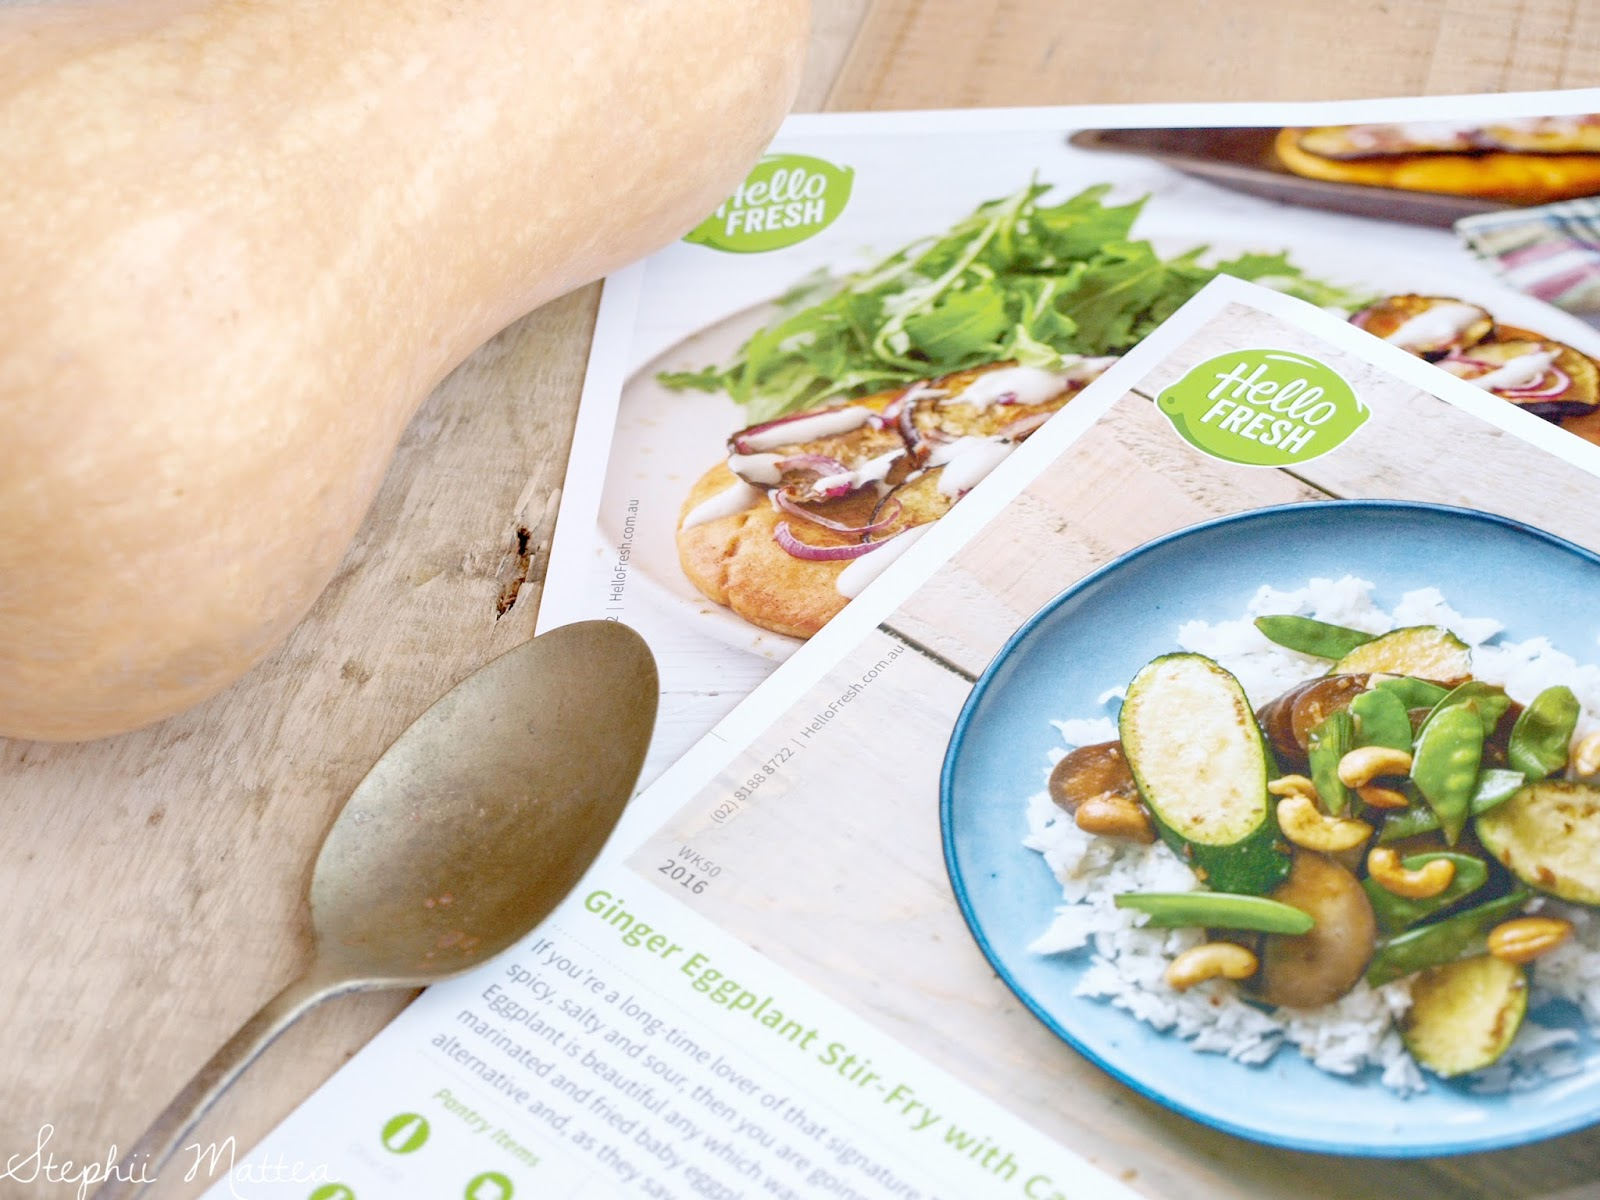 Meal Kit Delivery Service  Hellofresh Authorized Dealers 2020